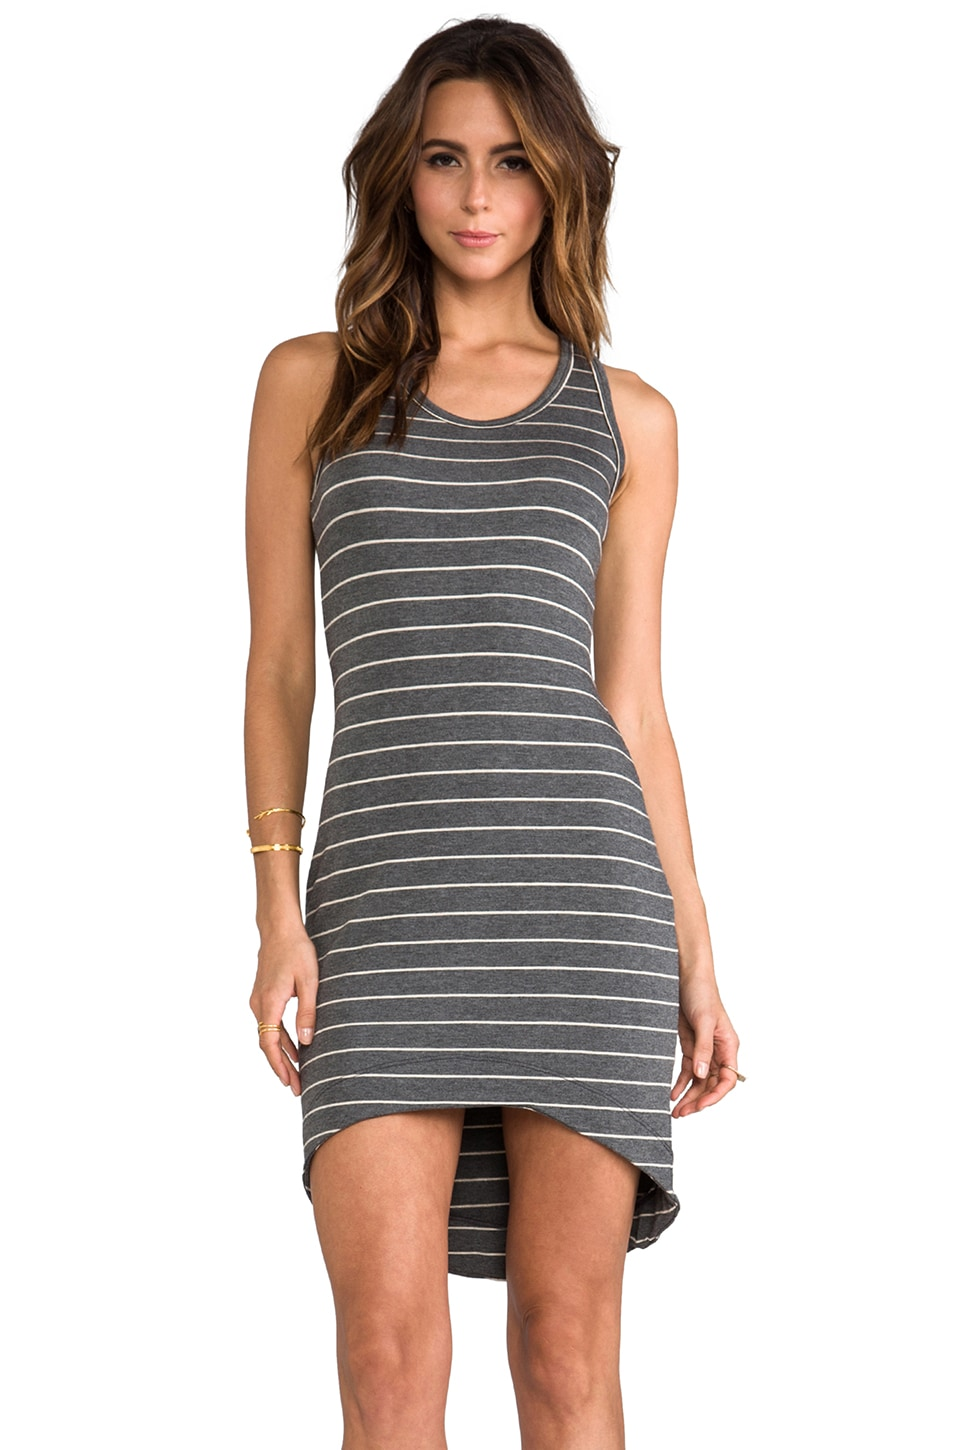 Saint Grace Moby Stripe Jo Hi-Low Tank Dress in Charcoal/Cream